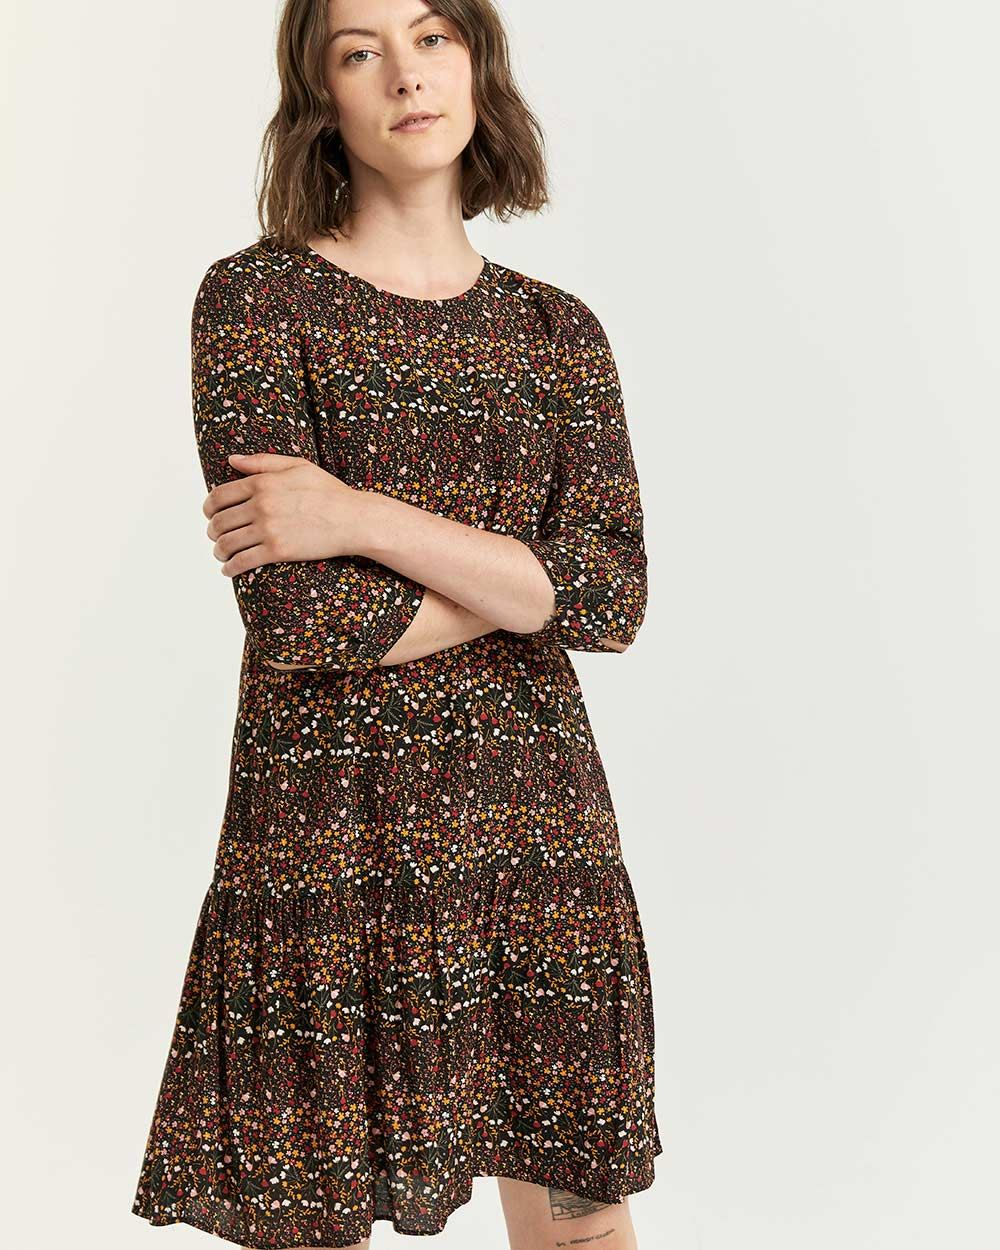 Printed Shift Dress with Drop Flounce - Petite